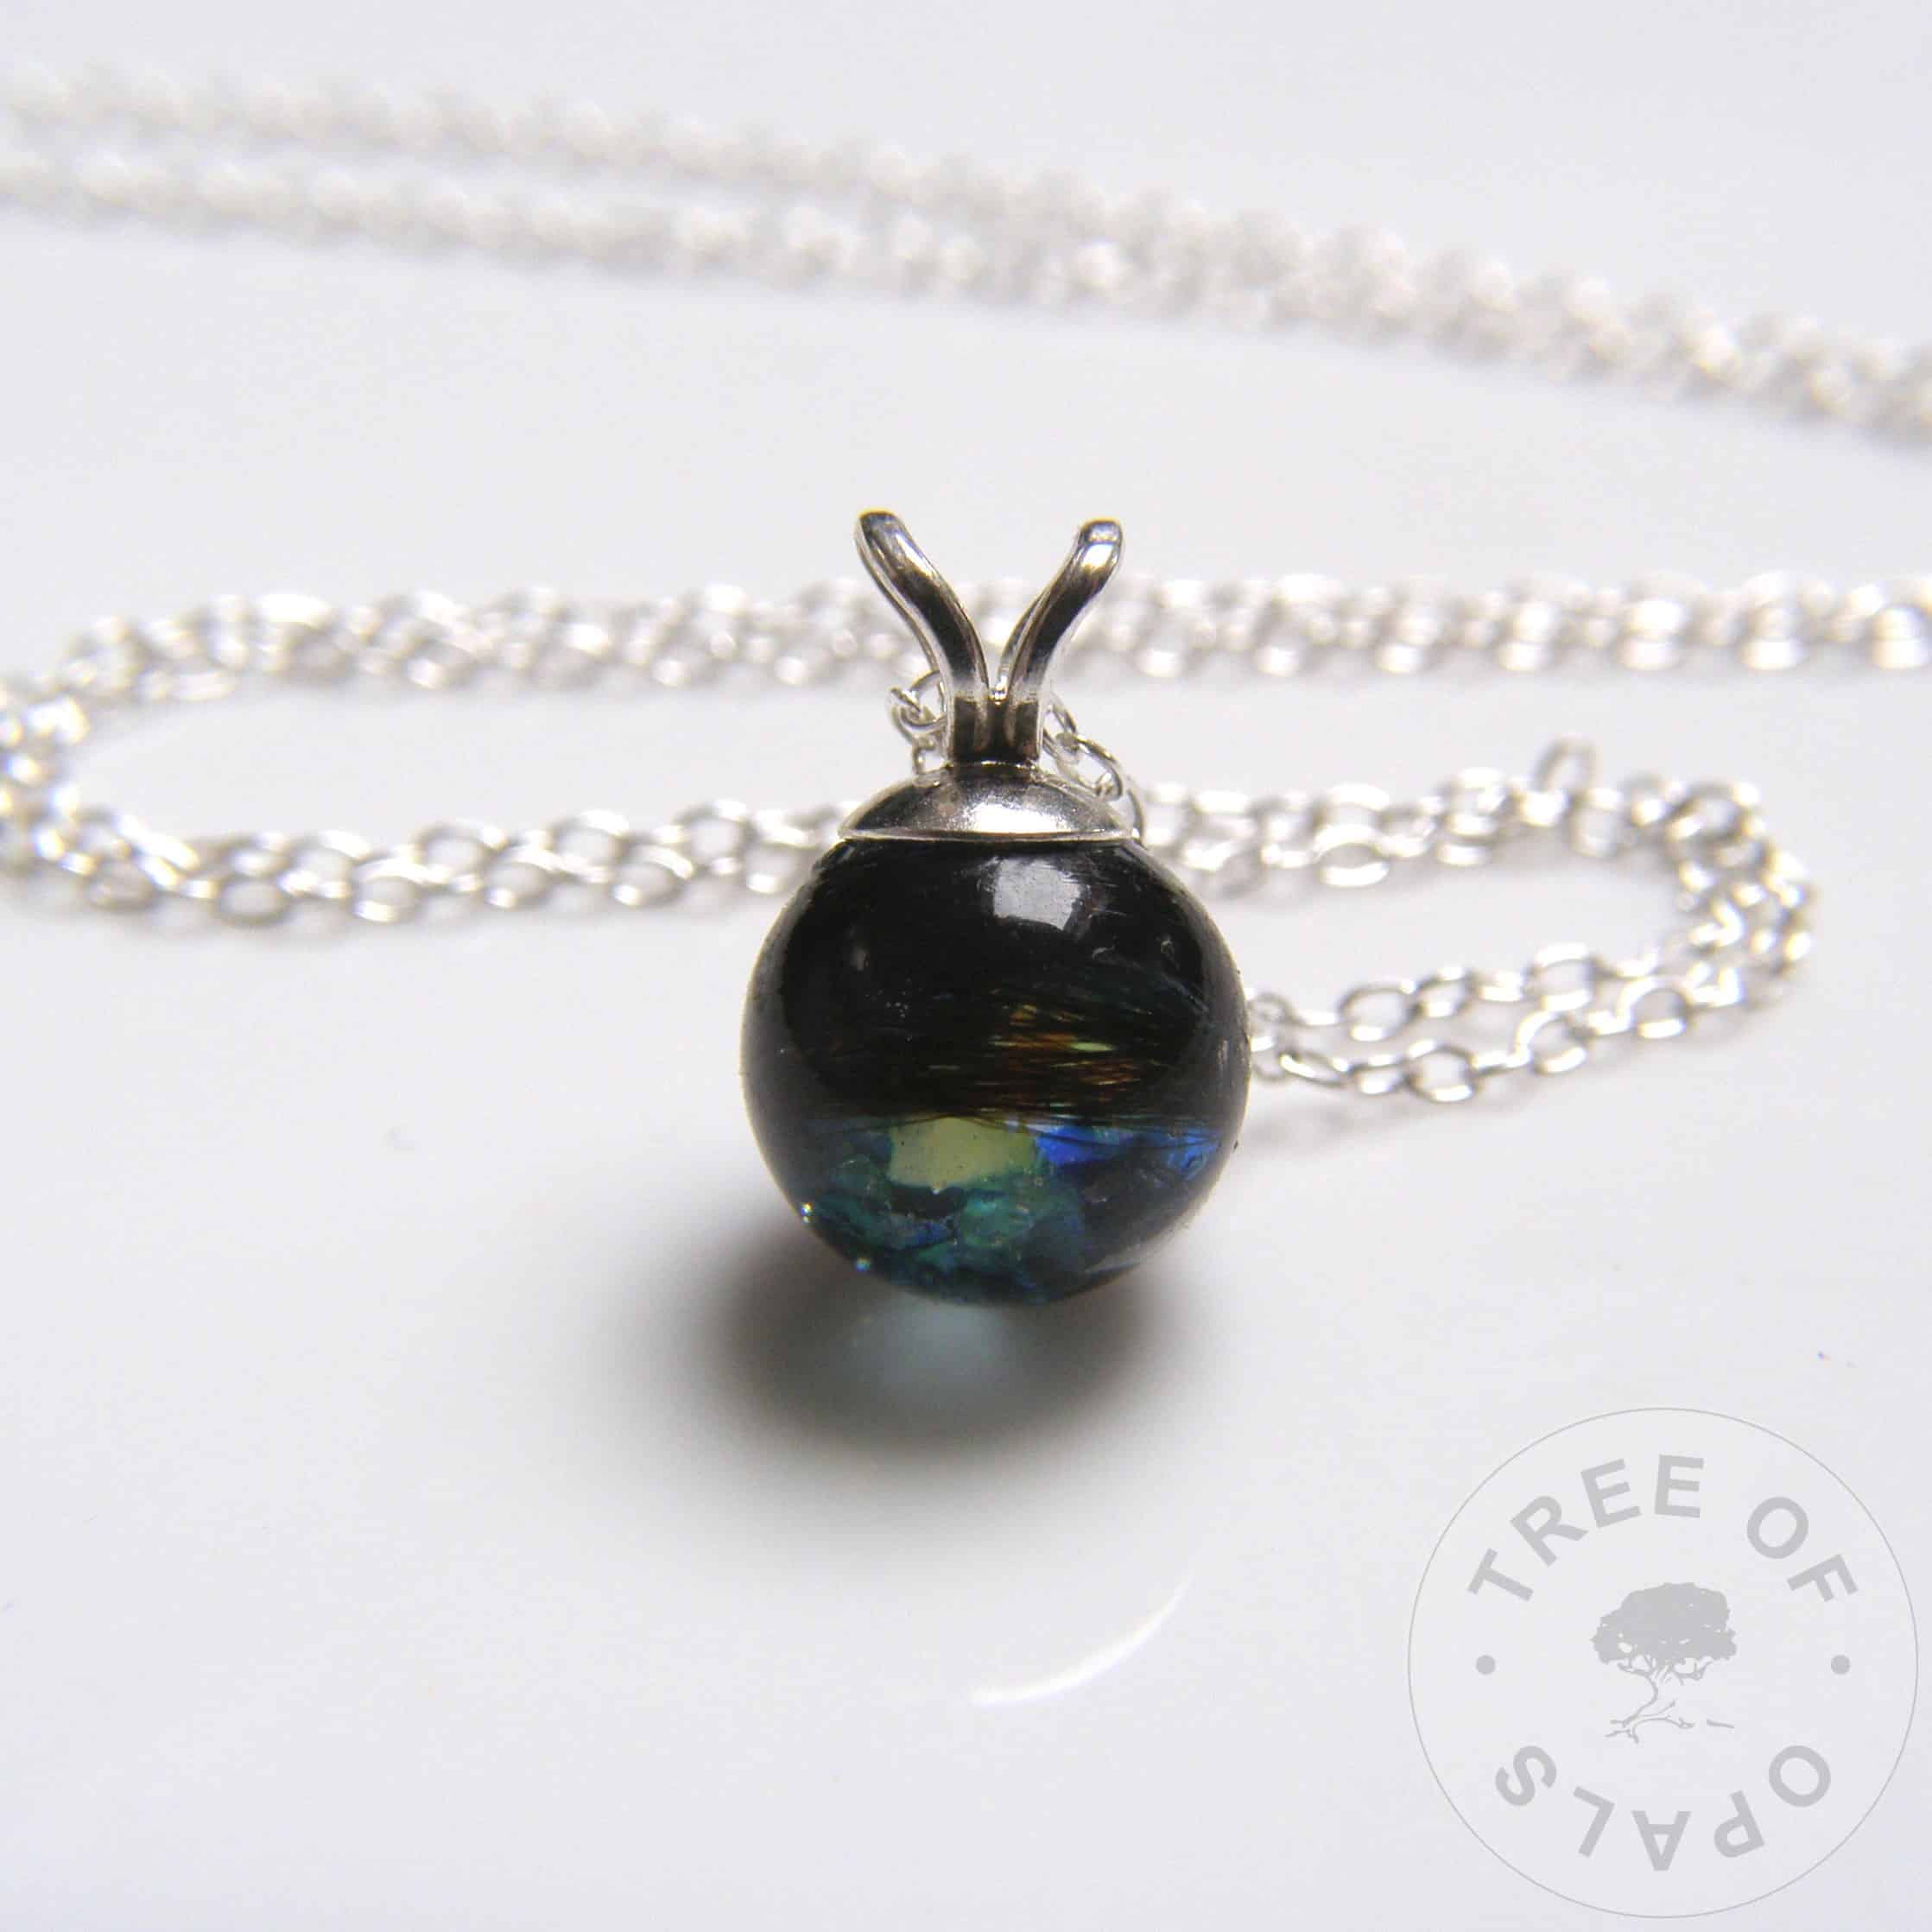 Lock of hair pearl with blue topaz and yellow opalescent flakes